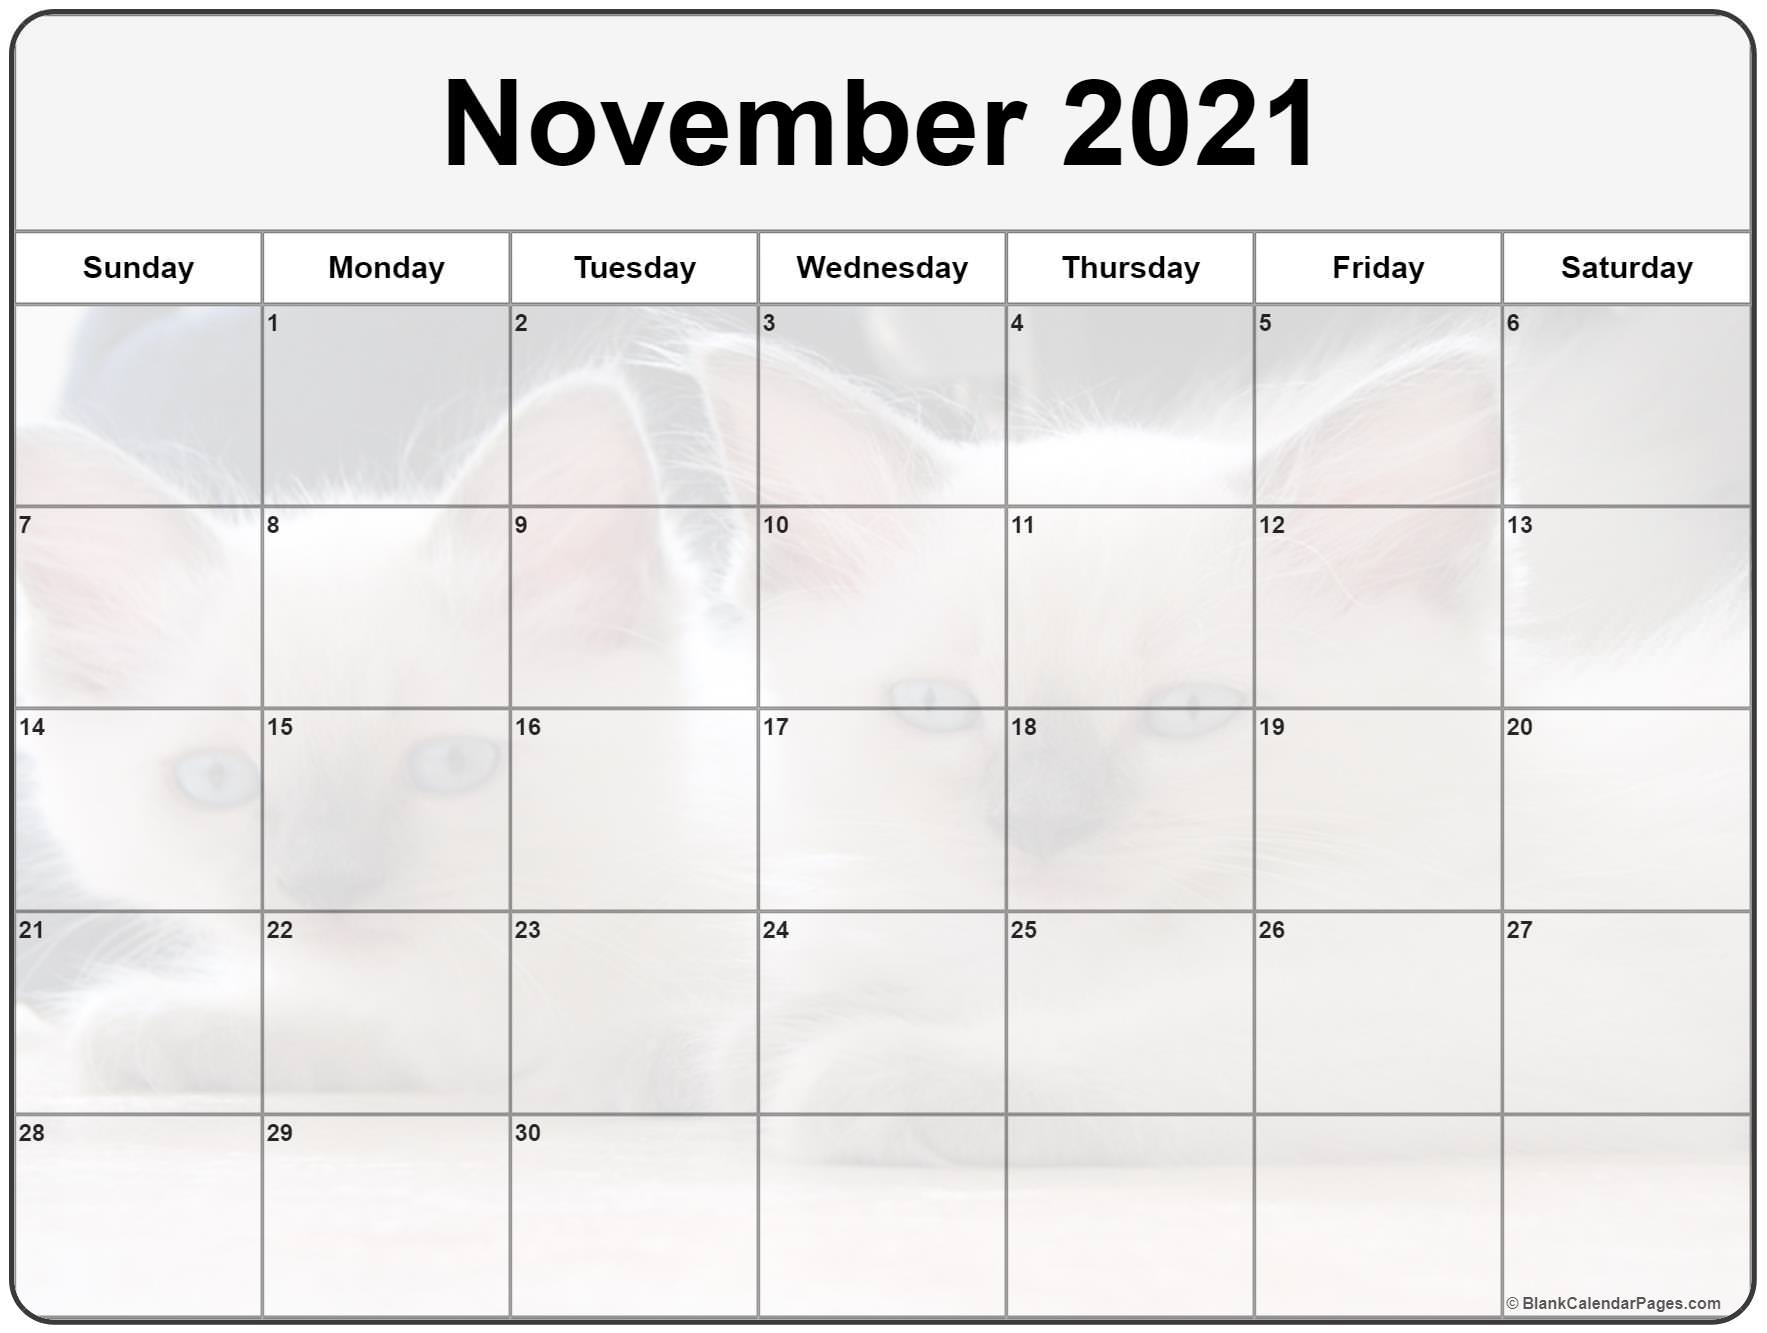 November 2021 with cat photo